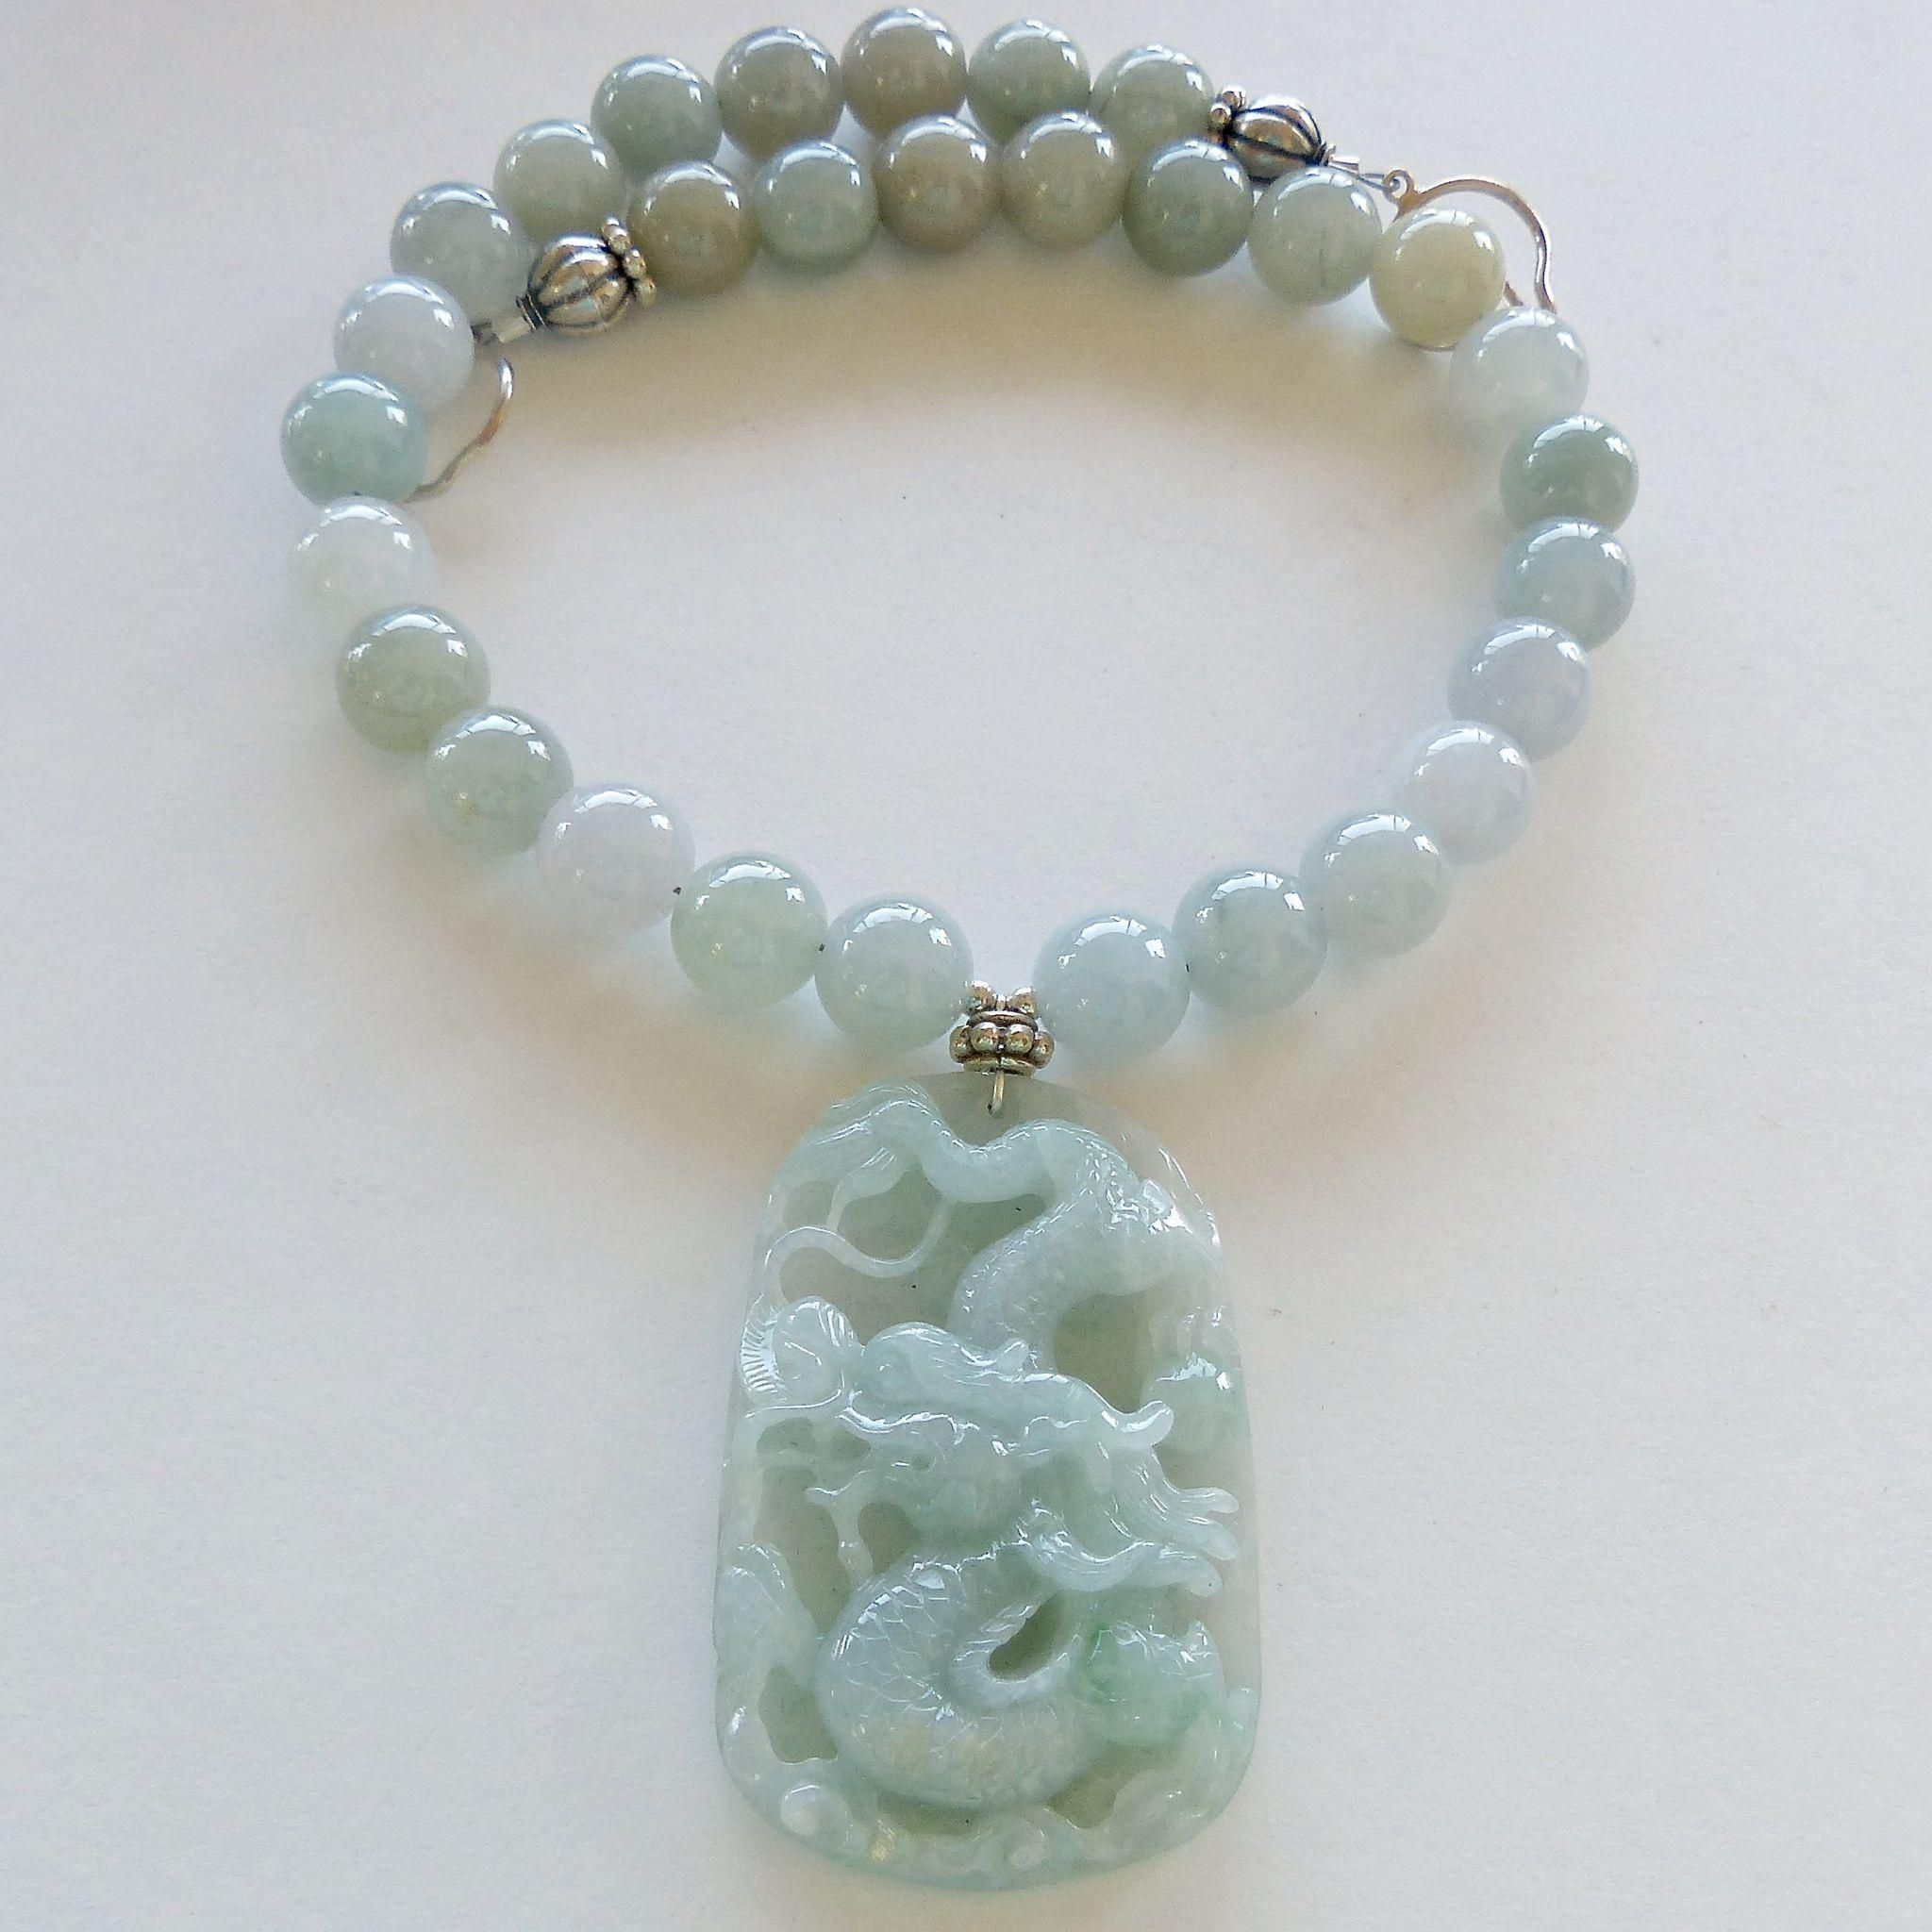 carved pendant amulet jade koip dragon jewelry fullxfull necklace p oriental yogi statement bold meaningful gift yoga talisman il